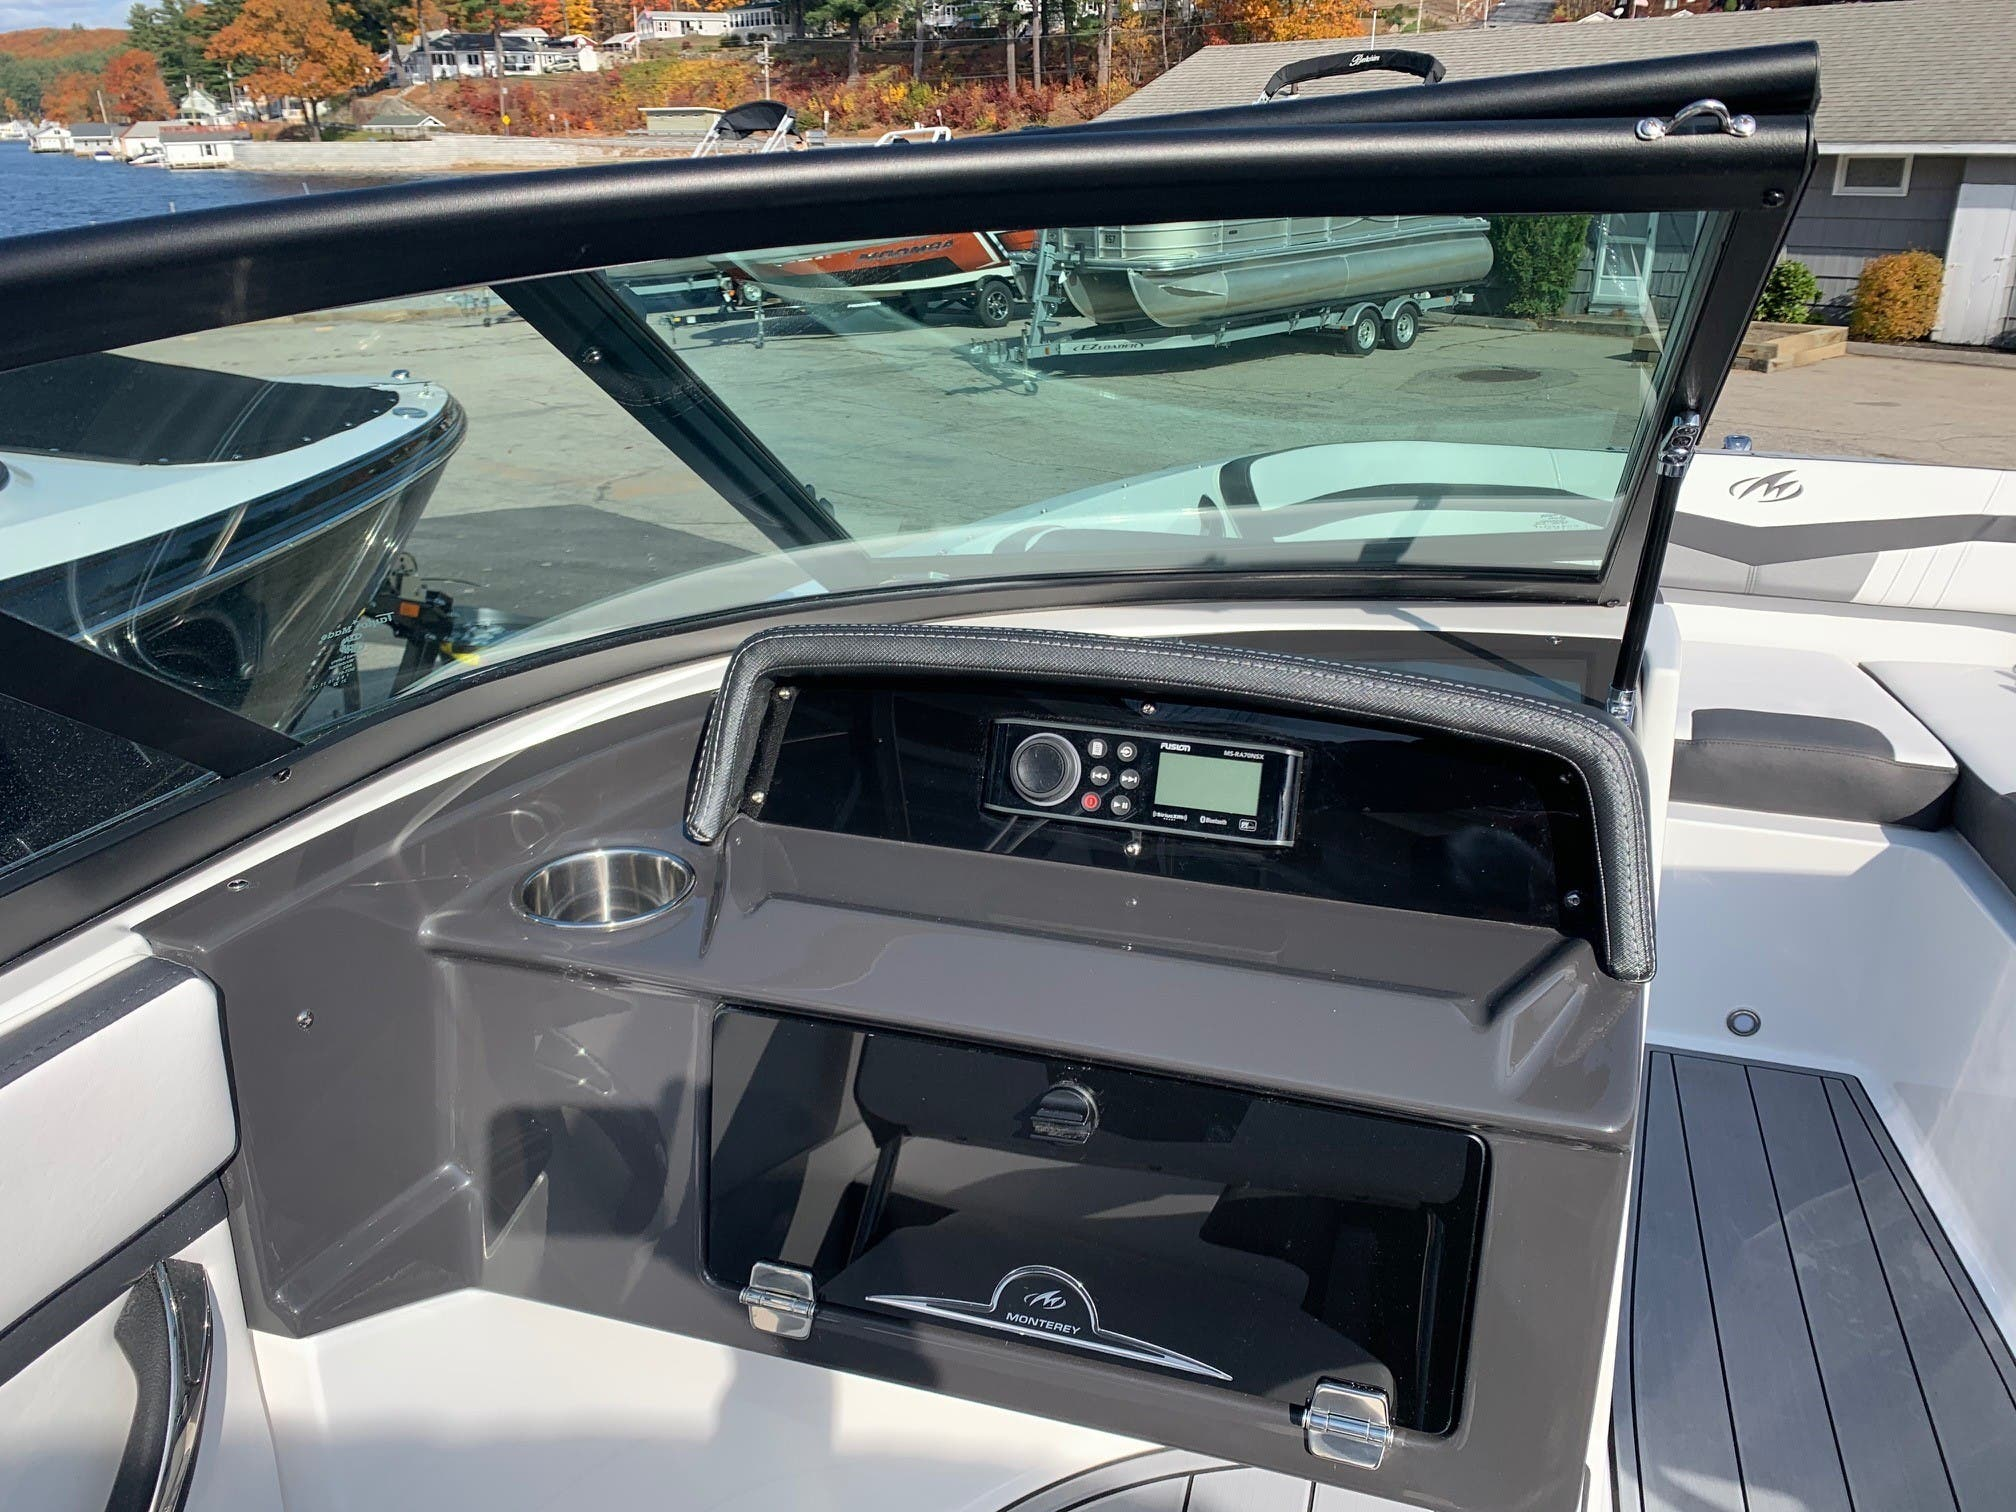 2021 Monterey boat for sale, model of the boat is M 22 & Image # 6 of 13